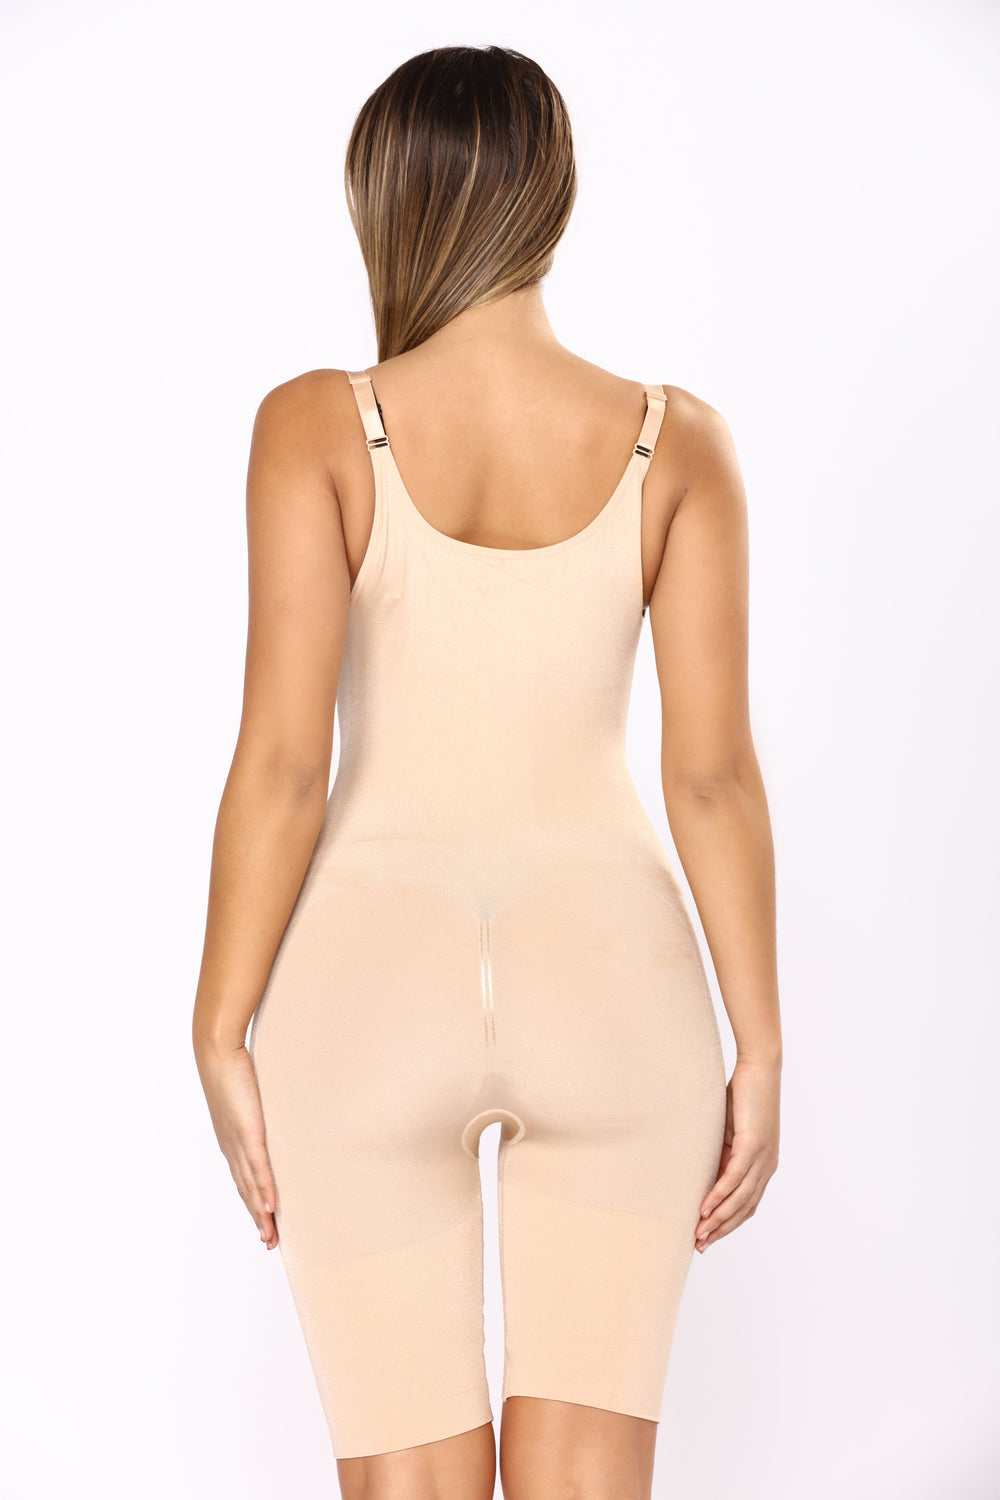 Stay Here Don't Go Bodysuit Shapewear - Nude